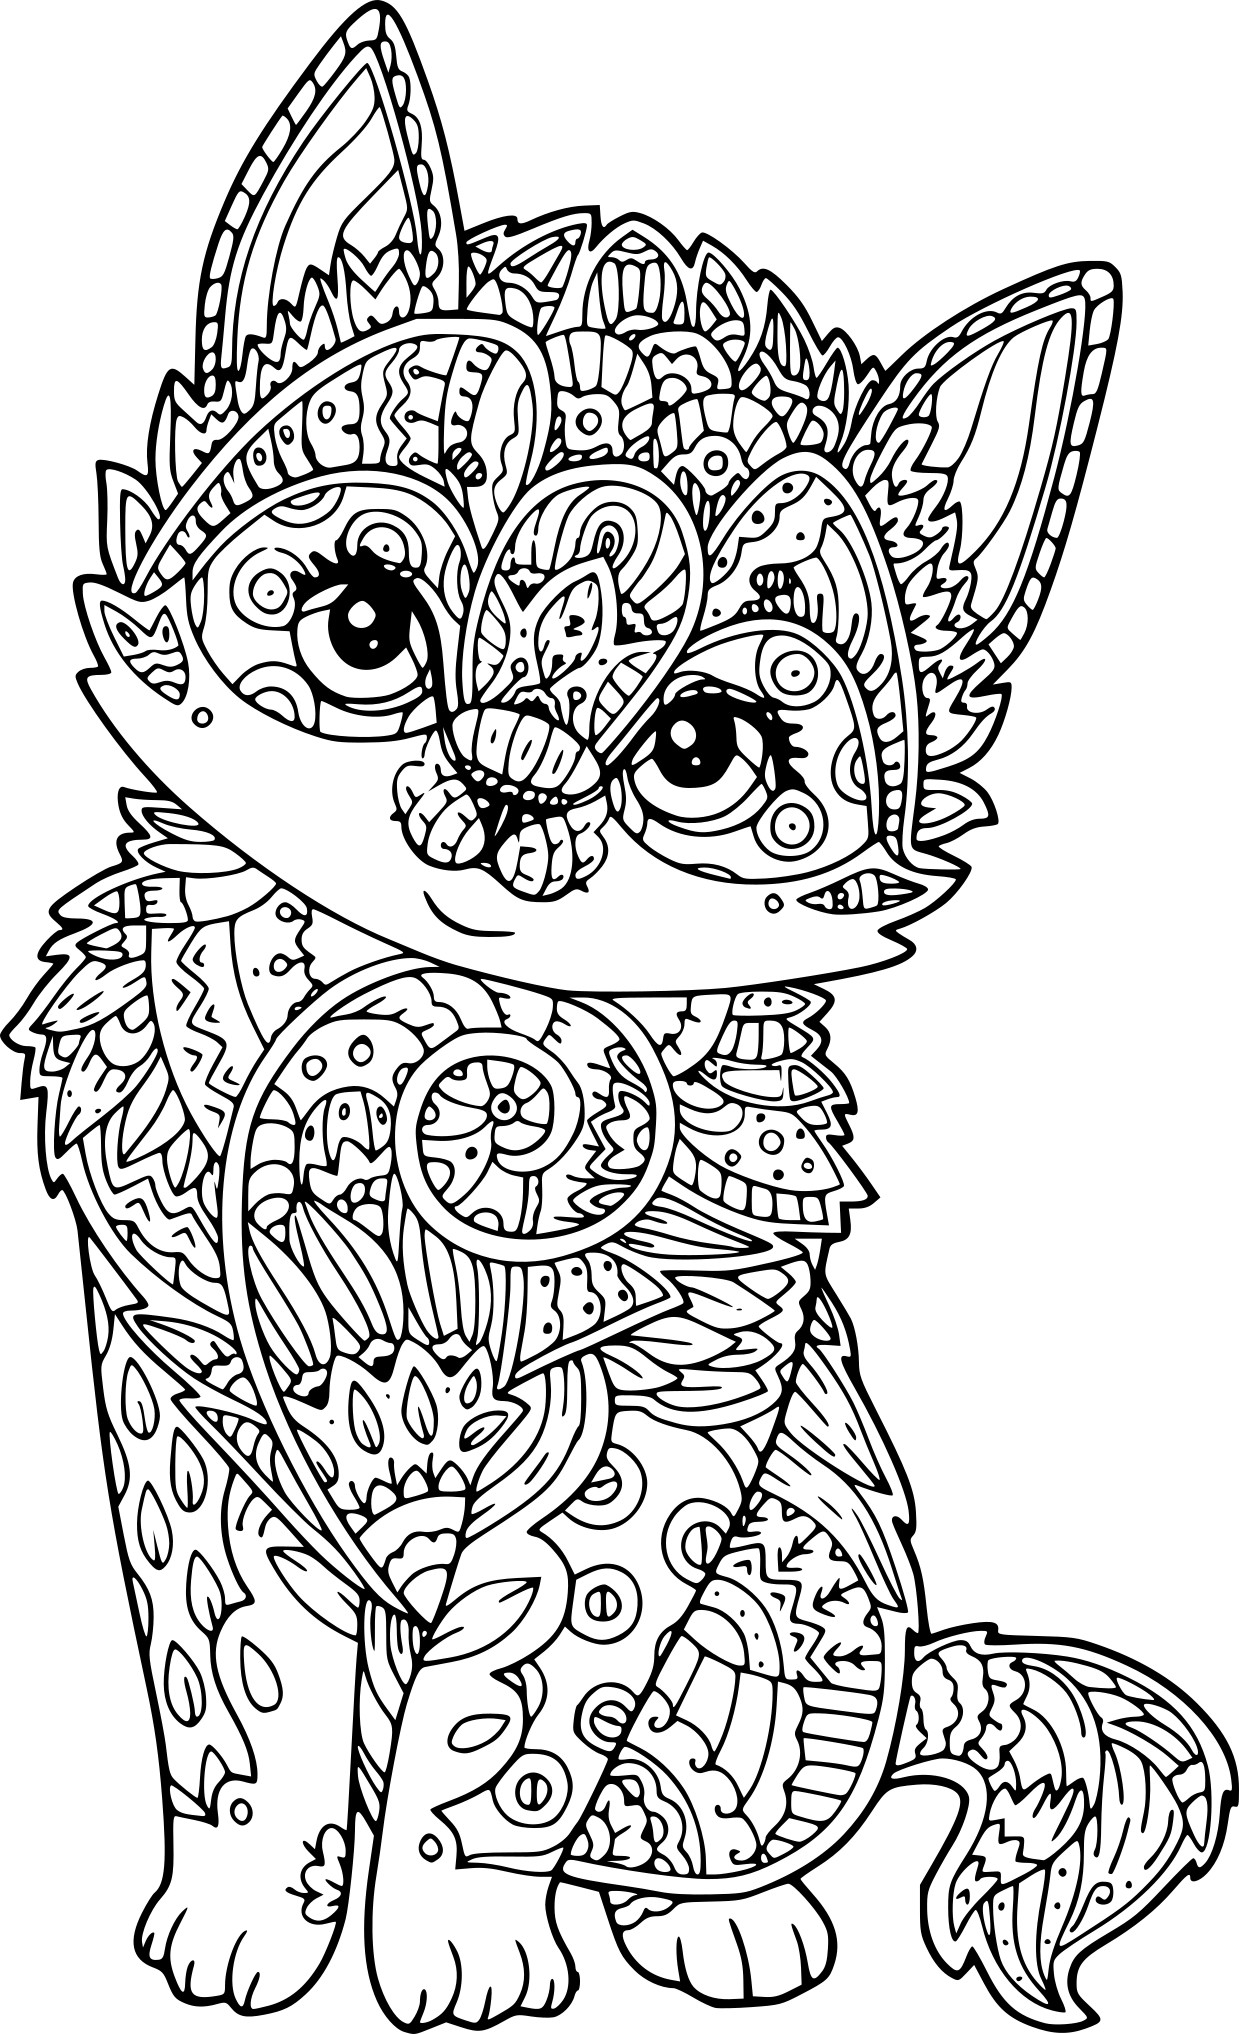 Coloriage Chat Antistress A Imprimer Sur Coloriages Info